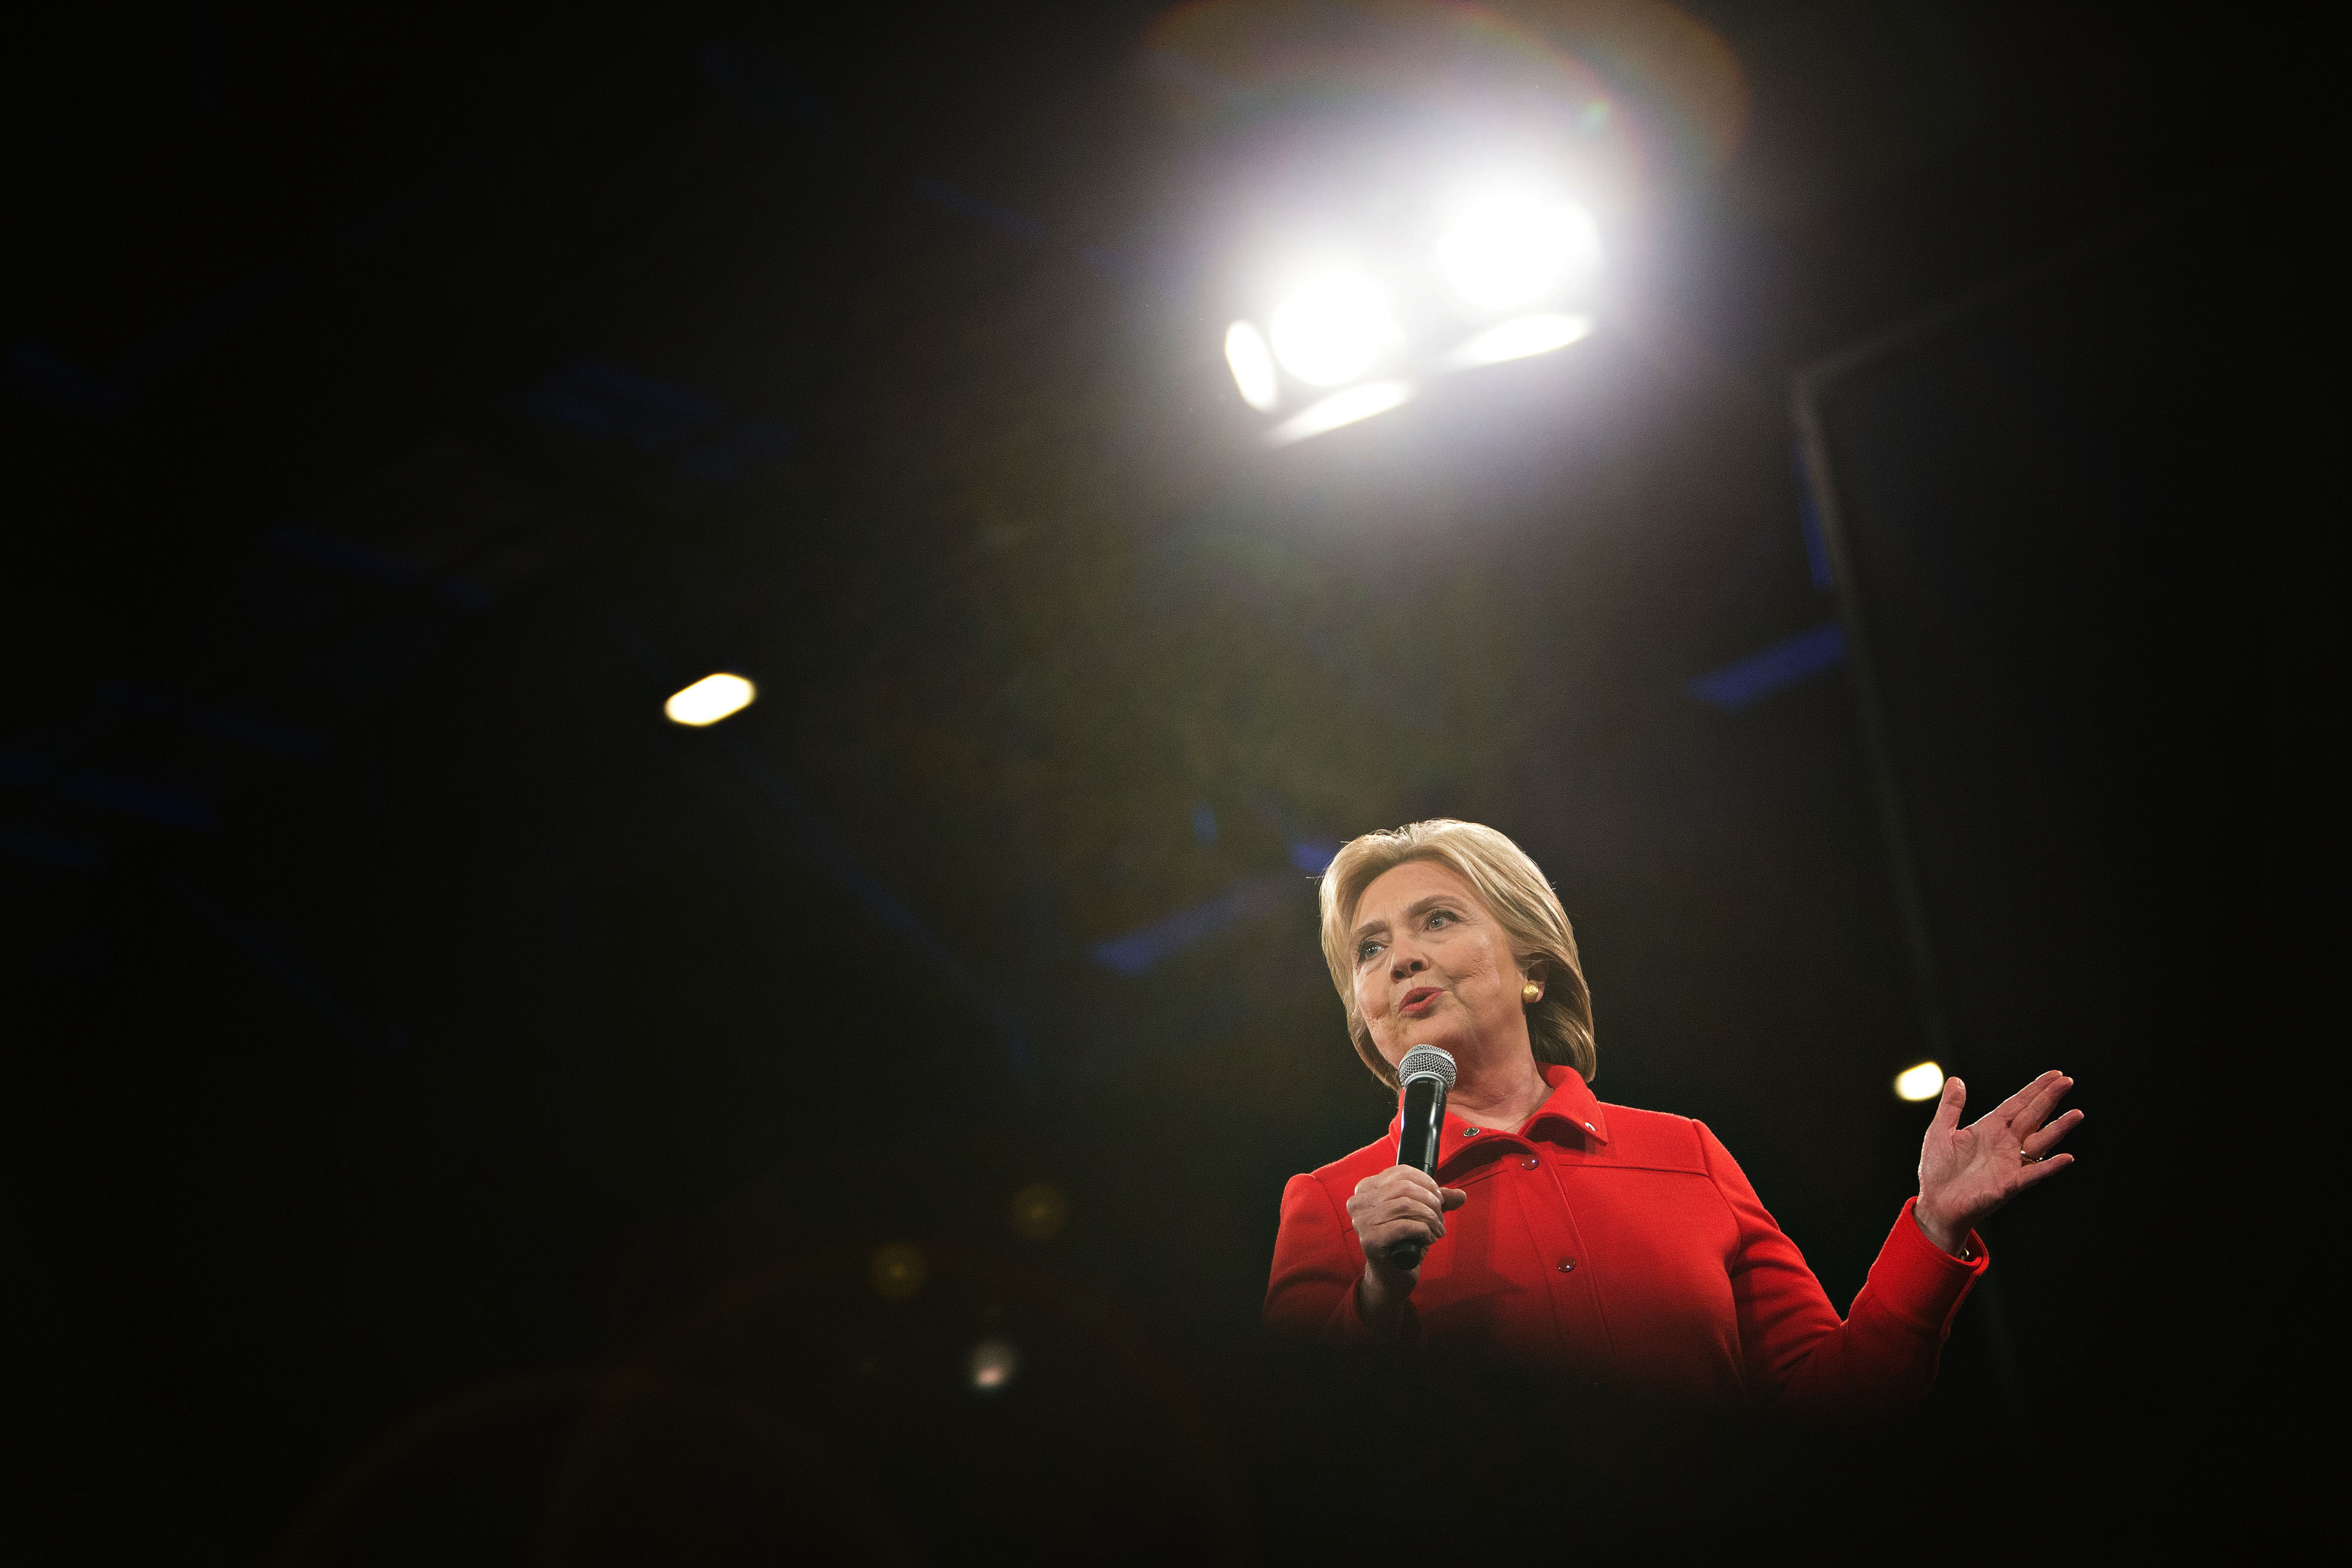 Hillary Clinton speaks at the Jefferson-Jackson Dinner in Des Moines, IO on Oct. 24, 2015.